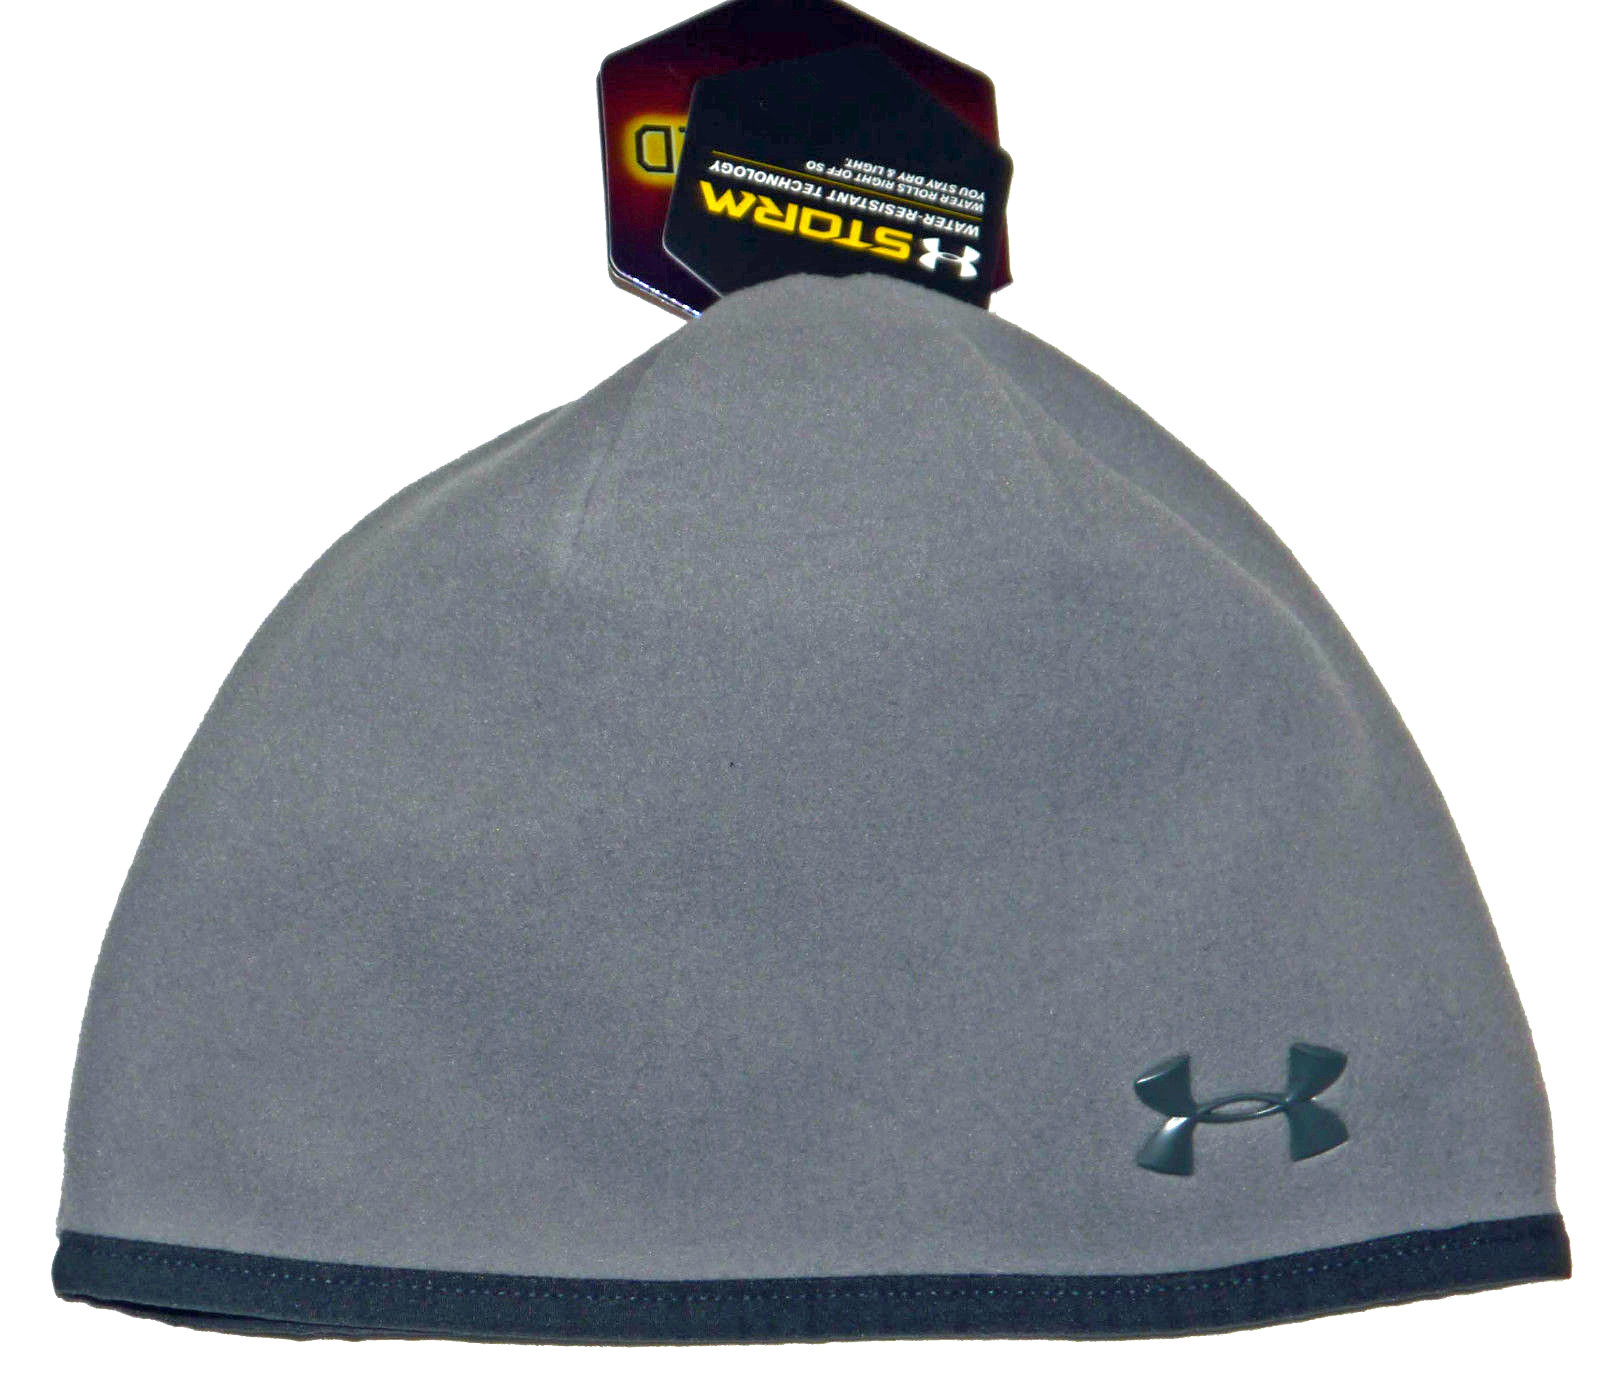 Under Armour STORM Infrared Women's Steeple Gray/Phantom Gray UA Beanie Hat 14610